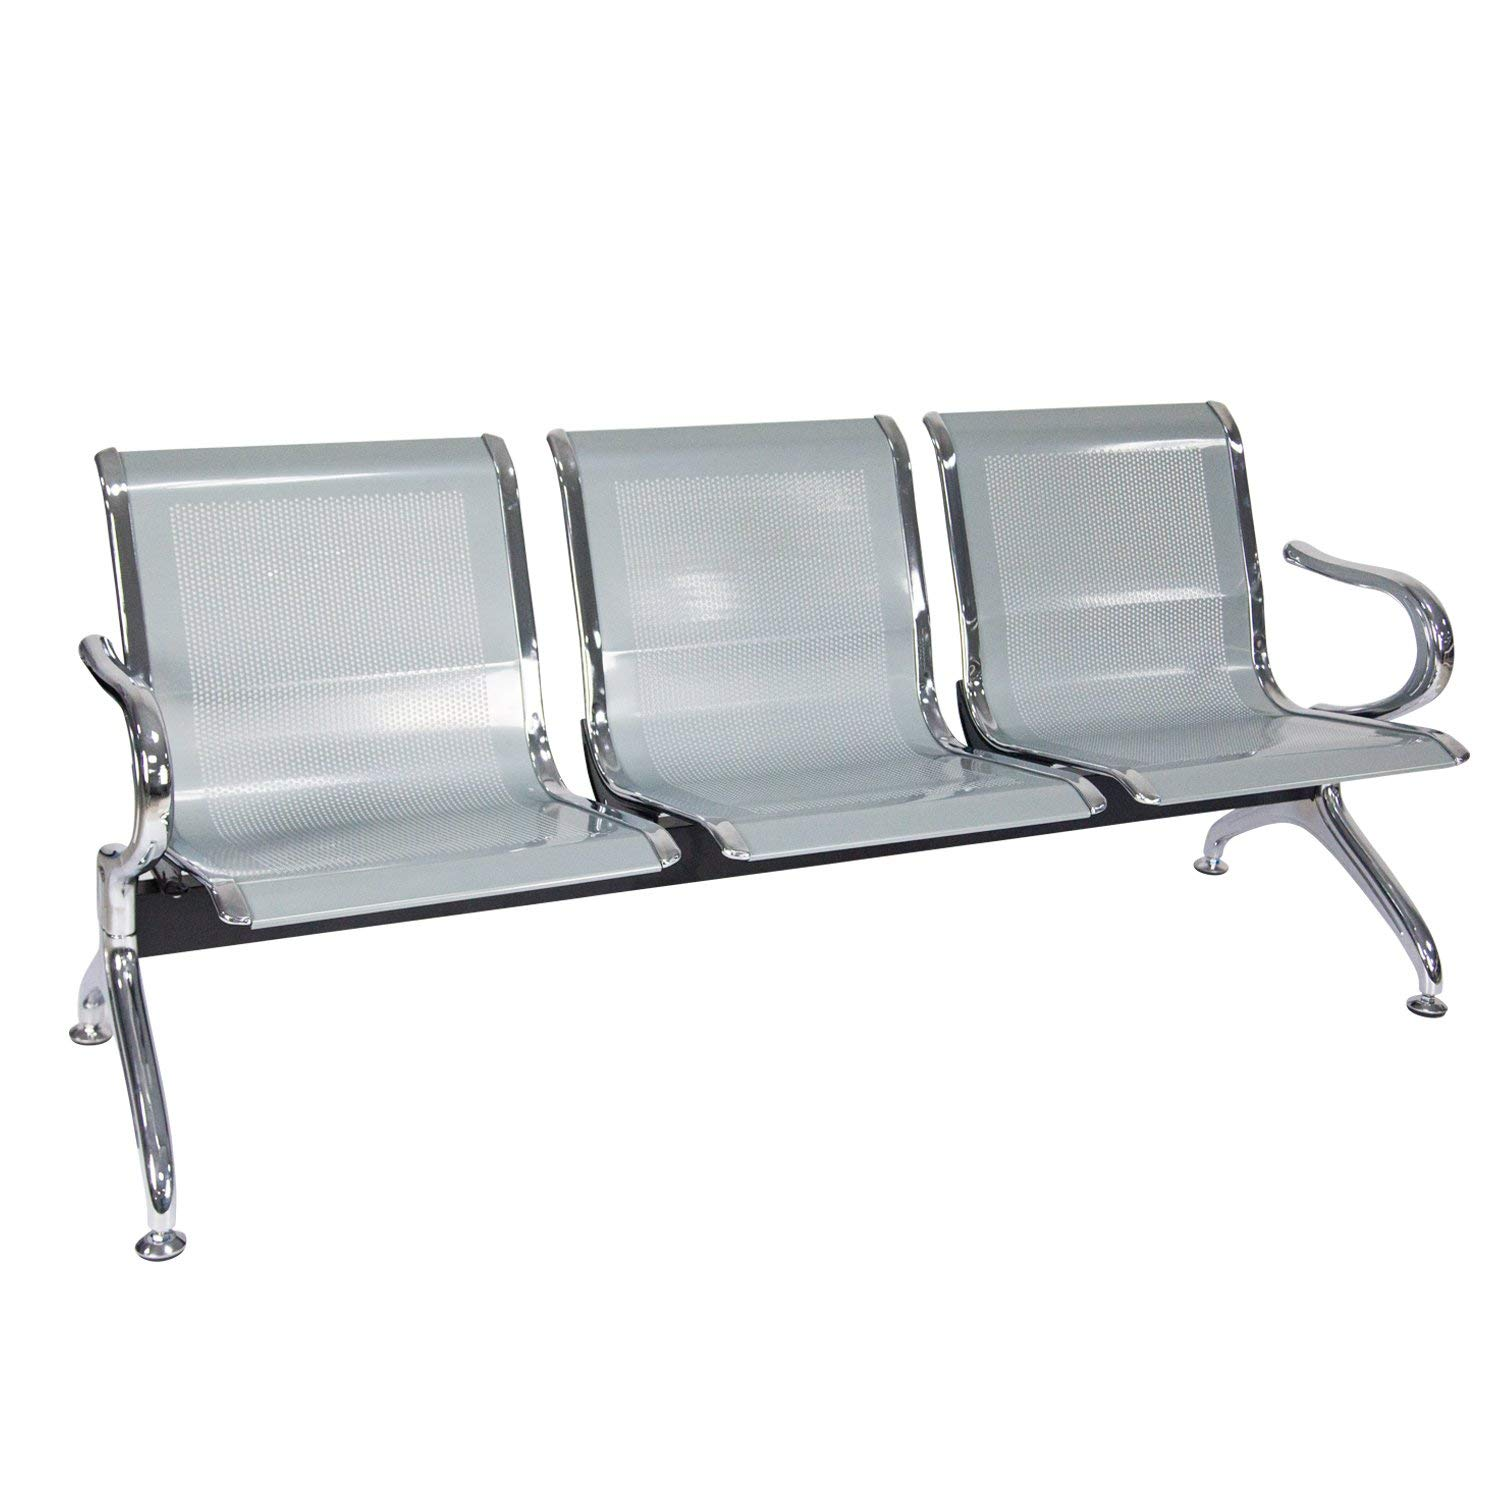 Reception Chair Waiting Room Chair with Arms Reception Bench for Business, Office, Hospital, Market, Airport (Silver, 3 Seats) by SUNVIVI OUTDOOR